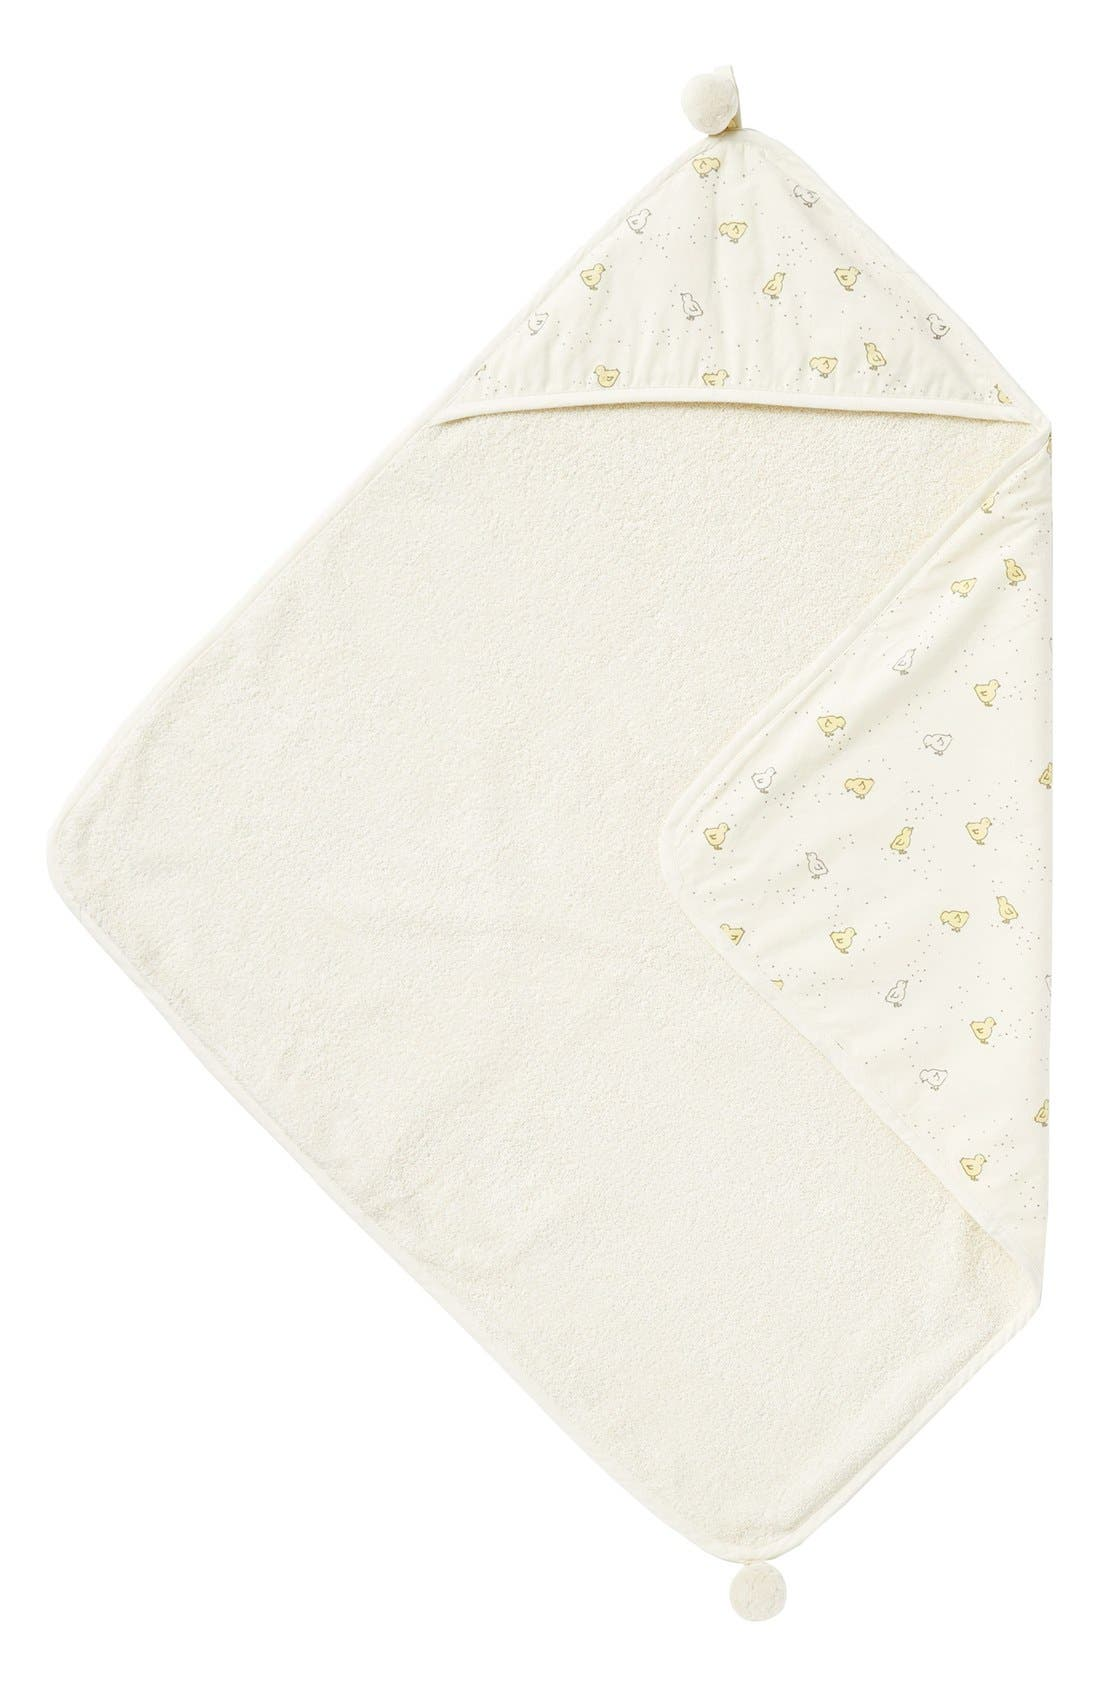 Baby Chick Print Hooded Towel,                         Main,                         color, Cream